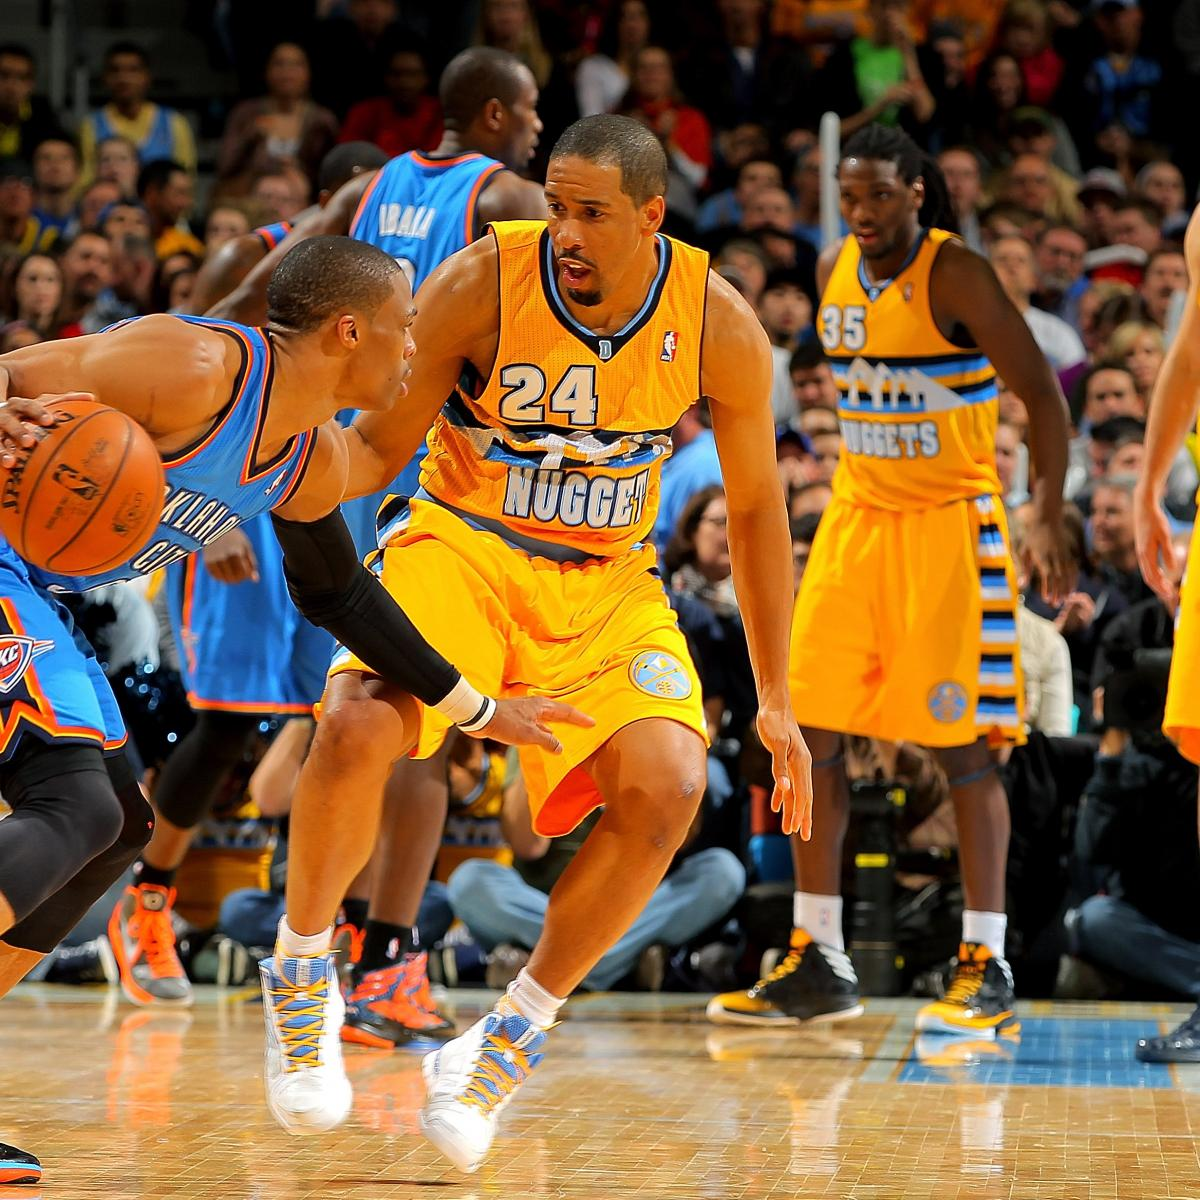 Thunder Vs Nuggets: Thunder Vs. Nuggets: Free-Throw Shooting Will Be